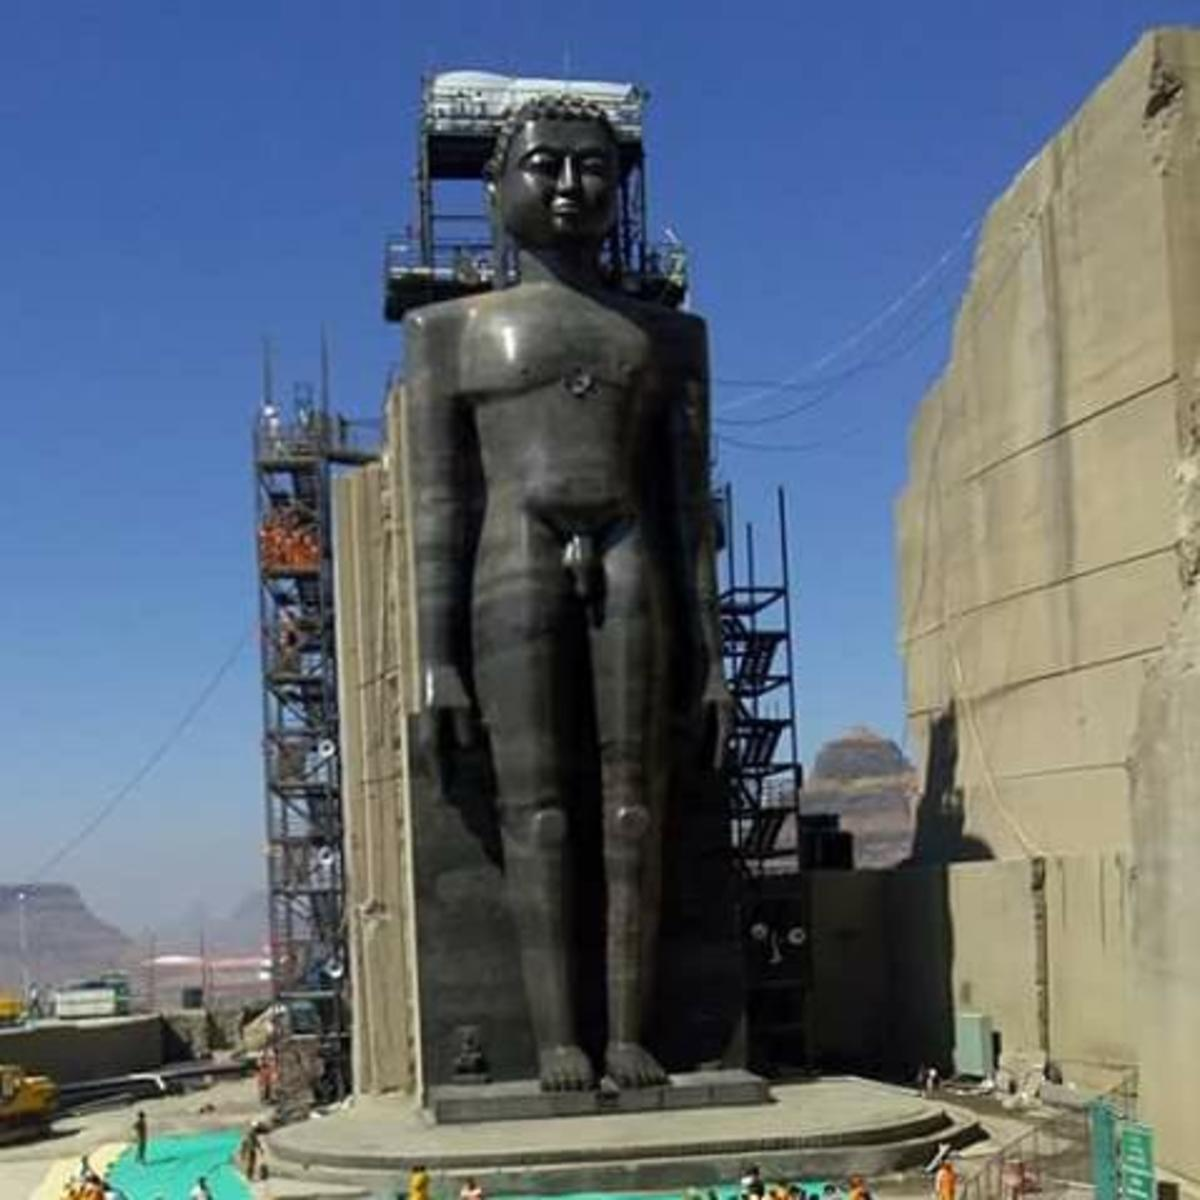 This is the tallest Jain statue in the world depicting  first Jain Tirthankara, Rishabhanatha.